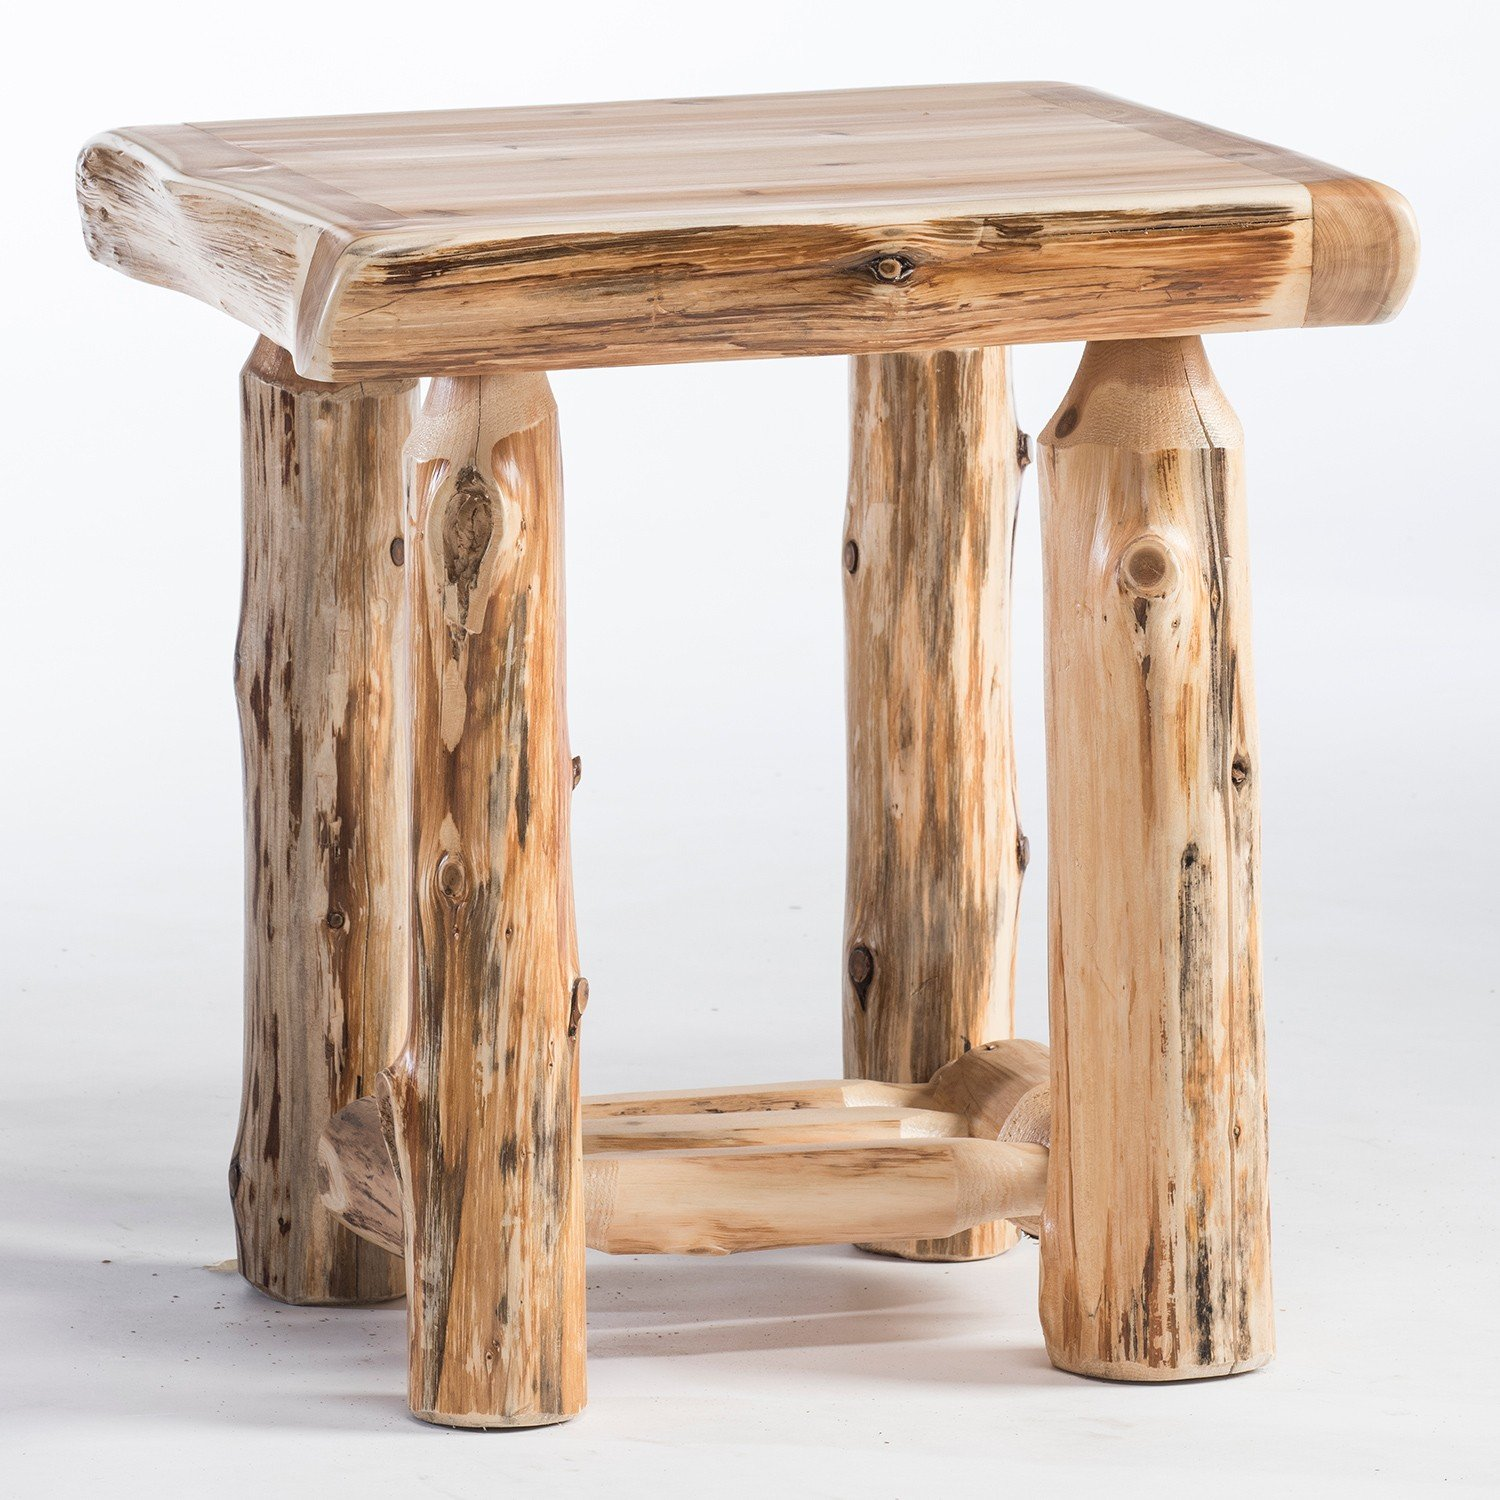 rustic western and country end tables log whole corner accent table cedar lake old dining wooden home decor threshold windham one door storage cabinet drop leaf with folding